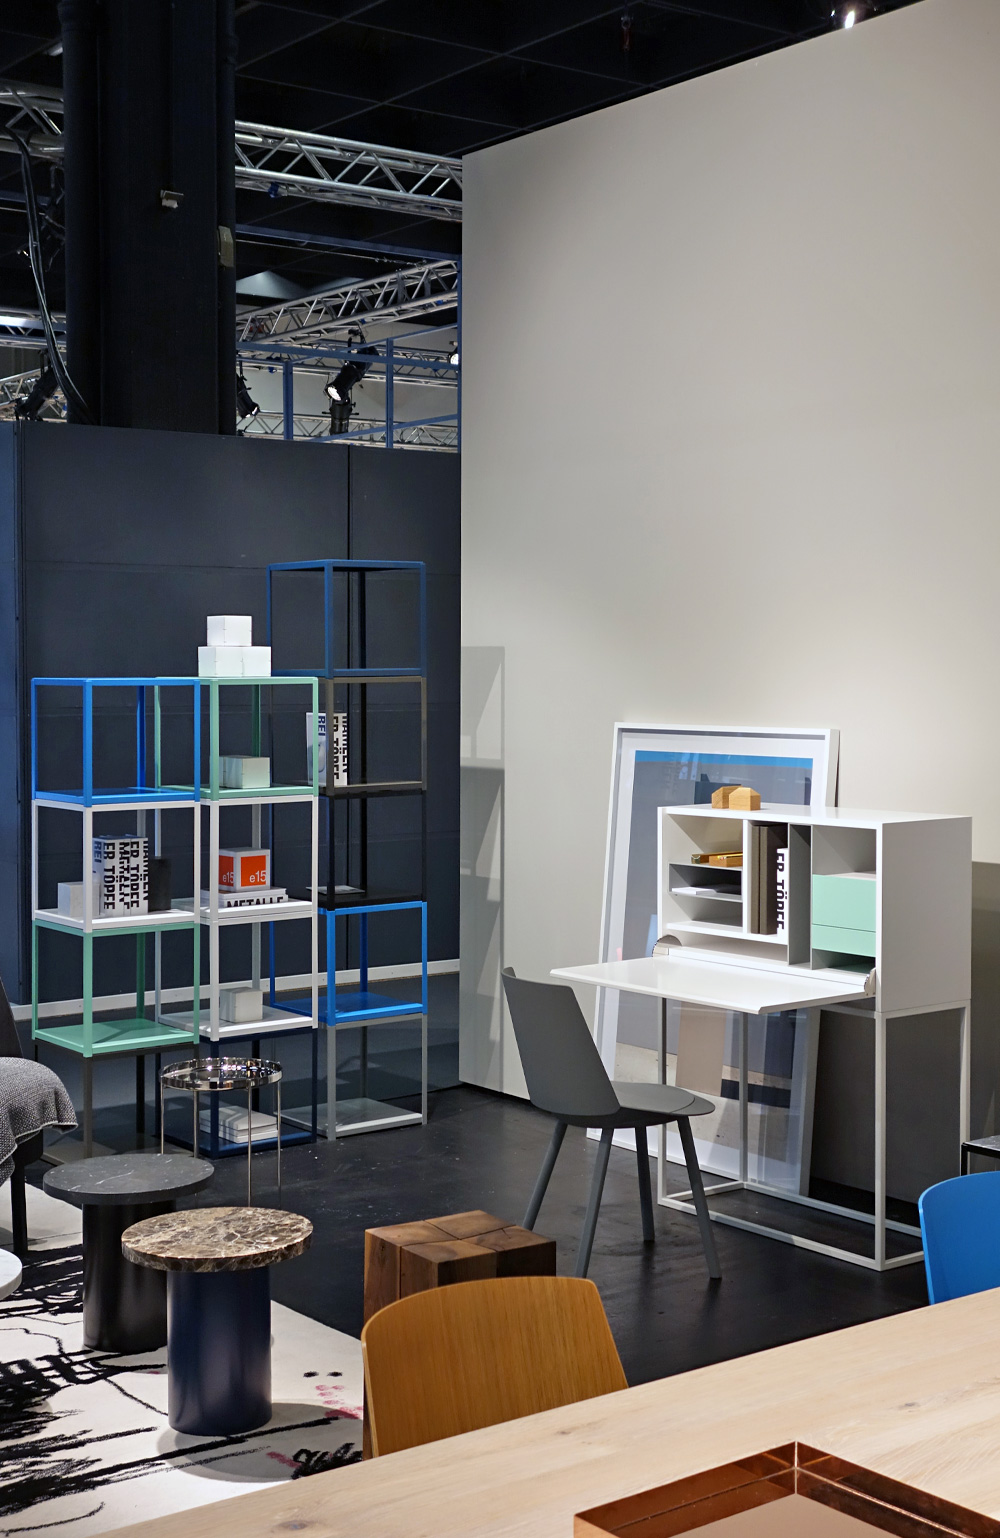 rundgang internationale einrichtungsmesse imm cologne 2014 unhyped. Black Bedroom Furniture Sets. Home Design Ideas